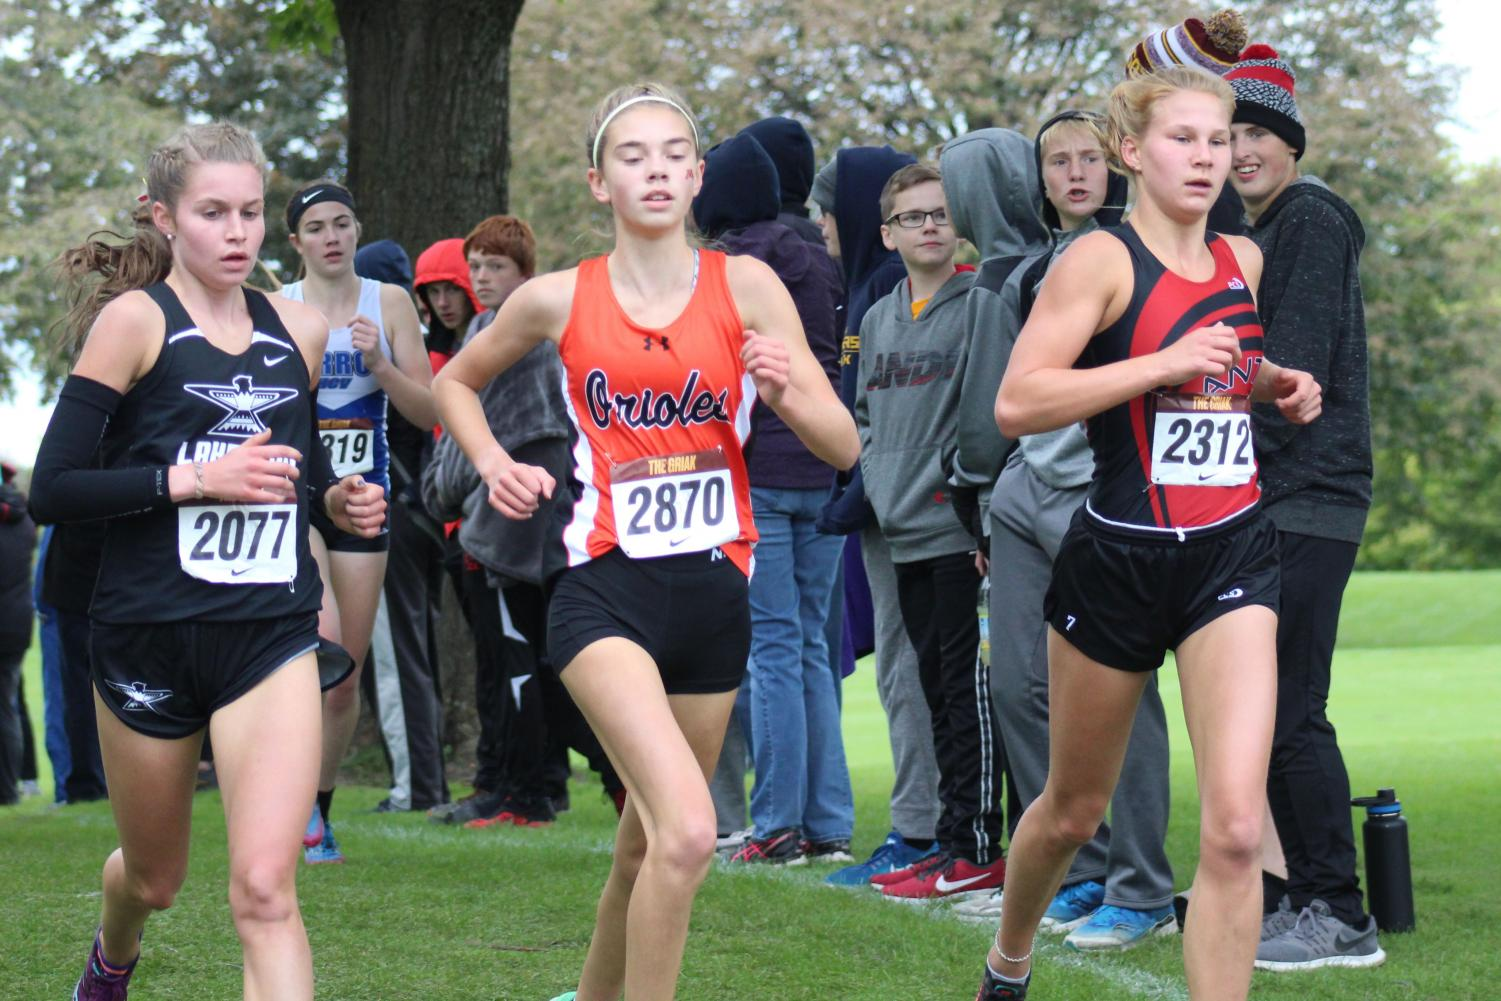 Freshman Josie Mosby runs with two competitors in the Griak race, Sept. 29. Mosby placed first individually and the team placed first overall.